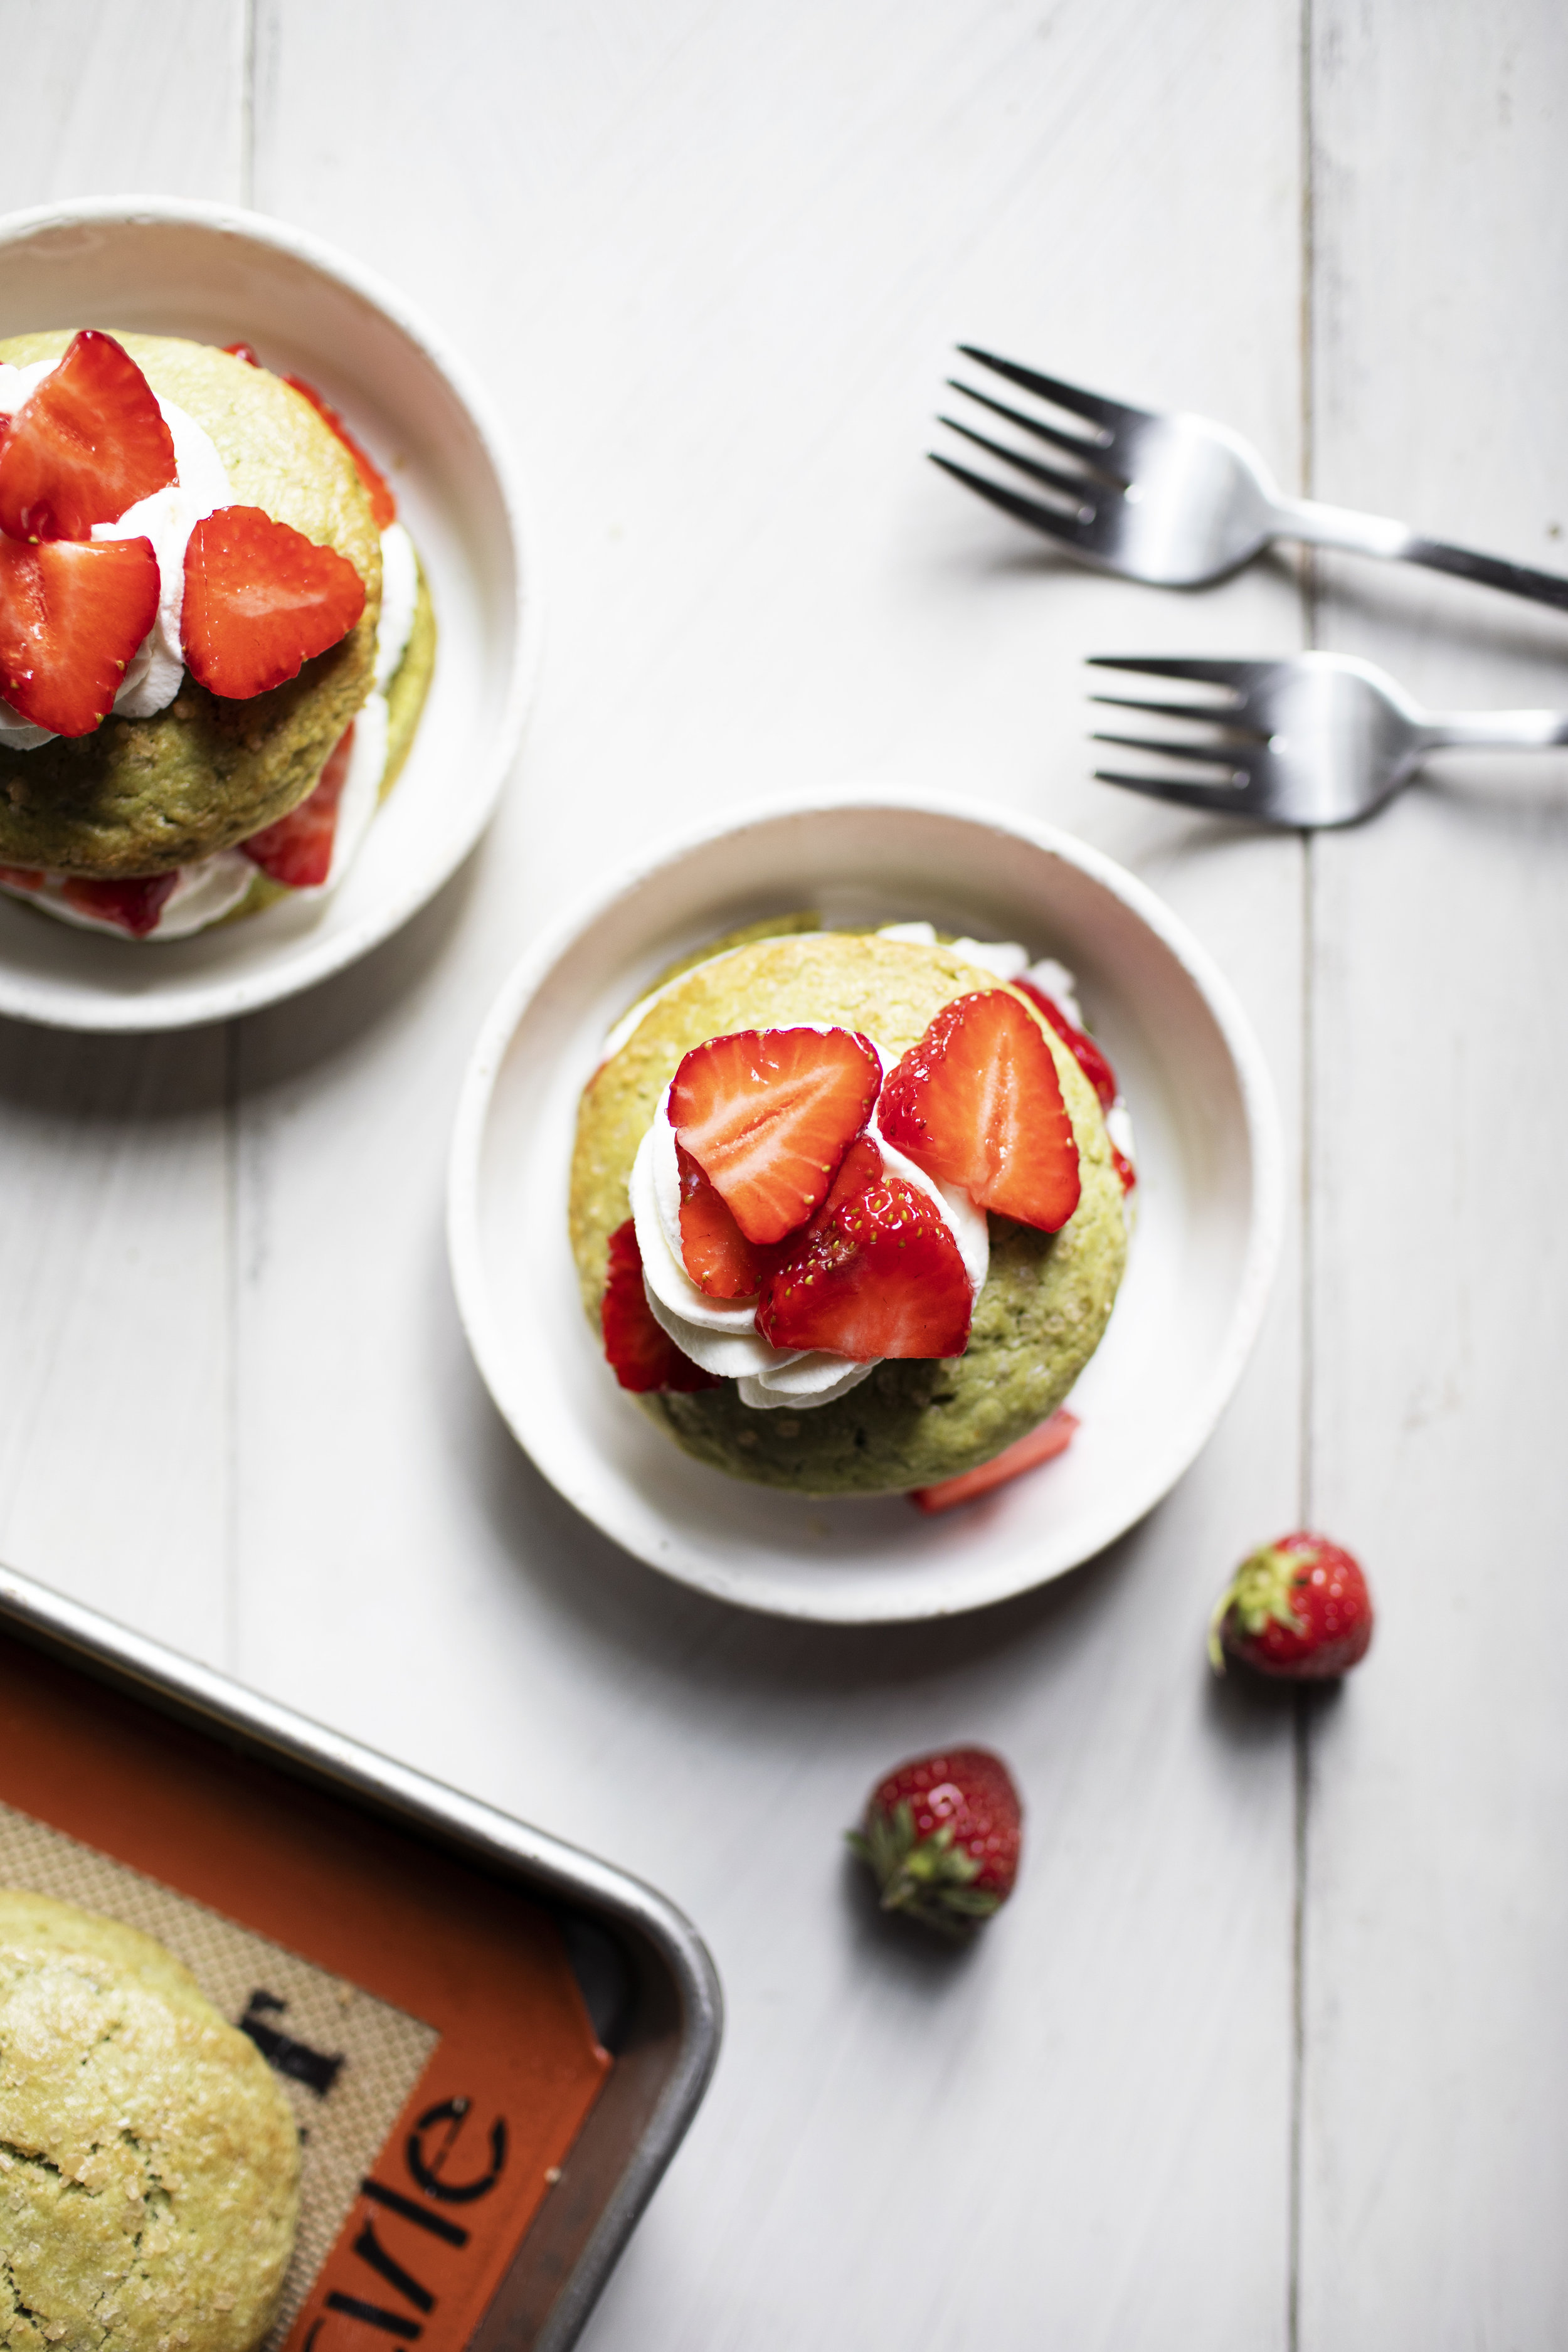 green tea strawberry shortcake iii.jpg